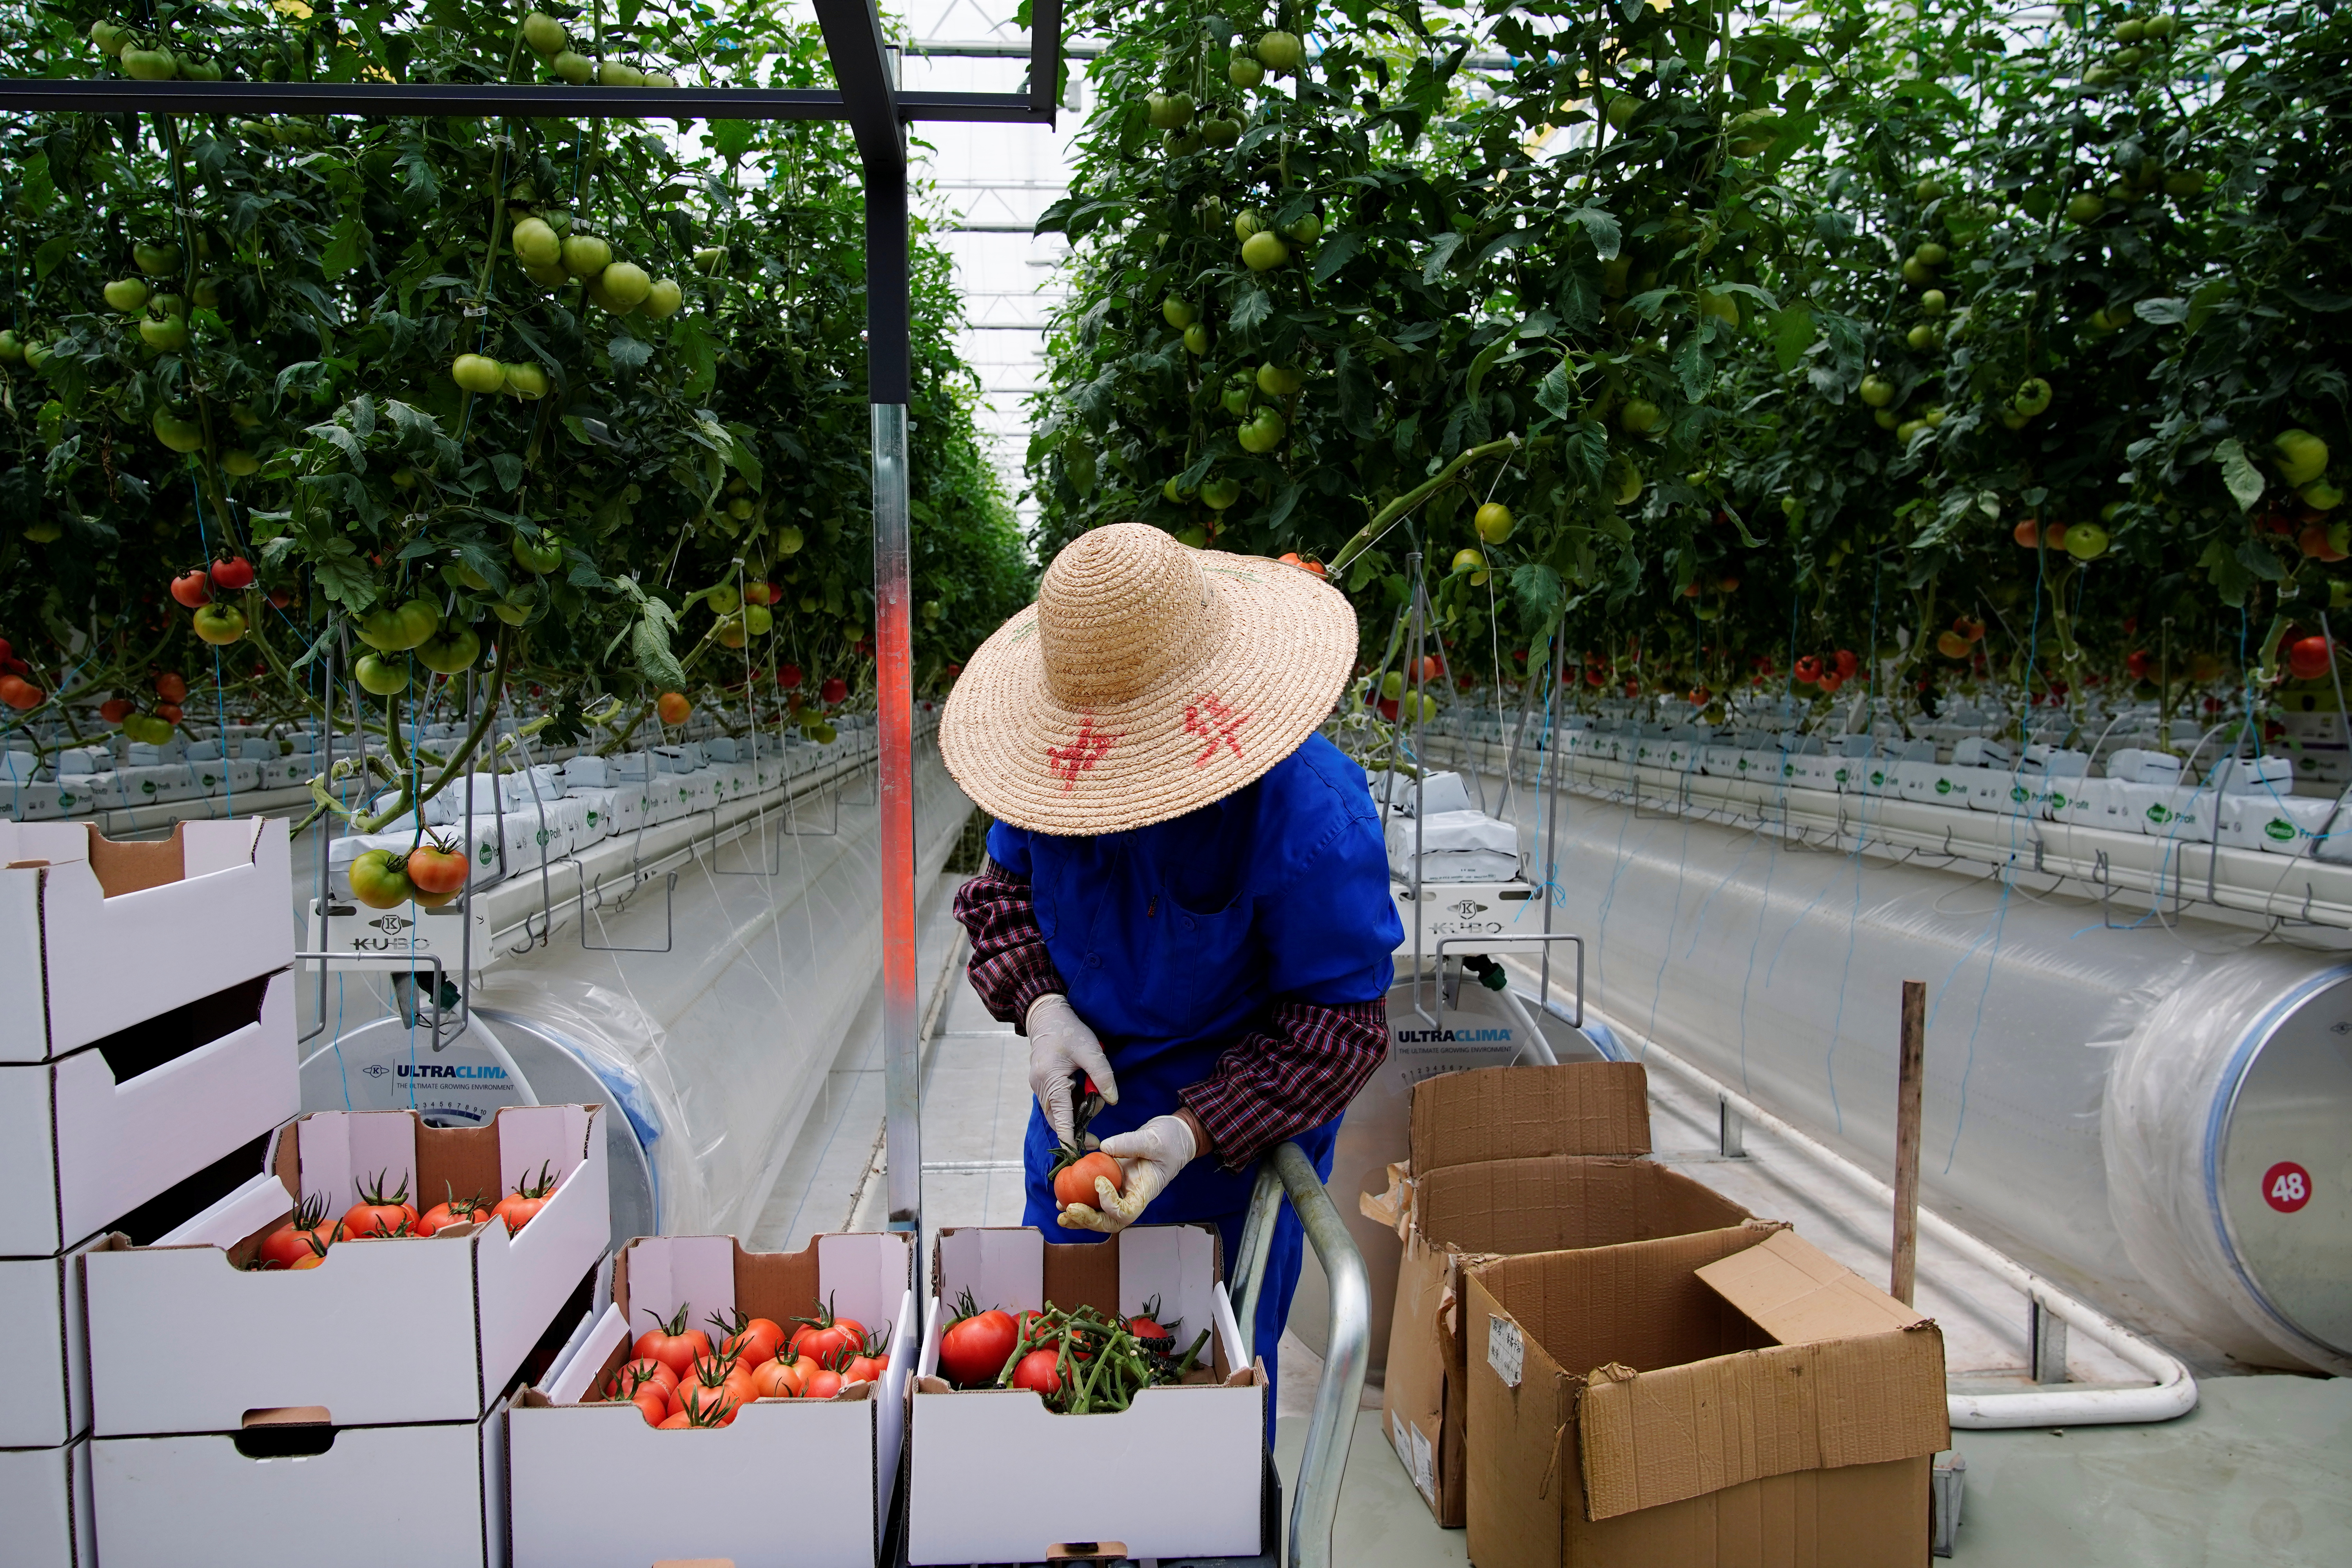 A farmer gathers tomatoes at Hengda greenhouse in Shanghai, China May 25, 2021. REUTERS/Aly Song